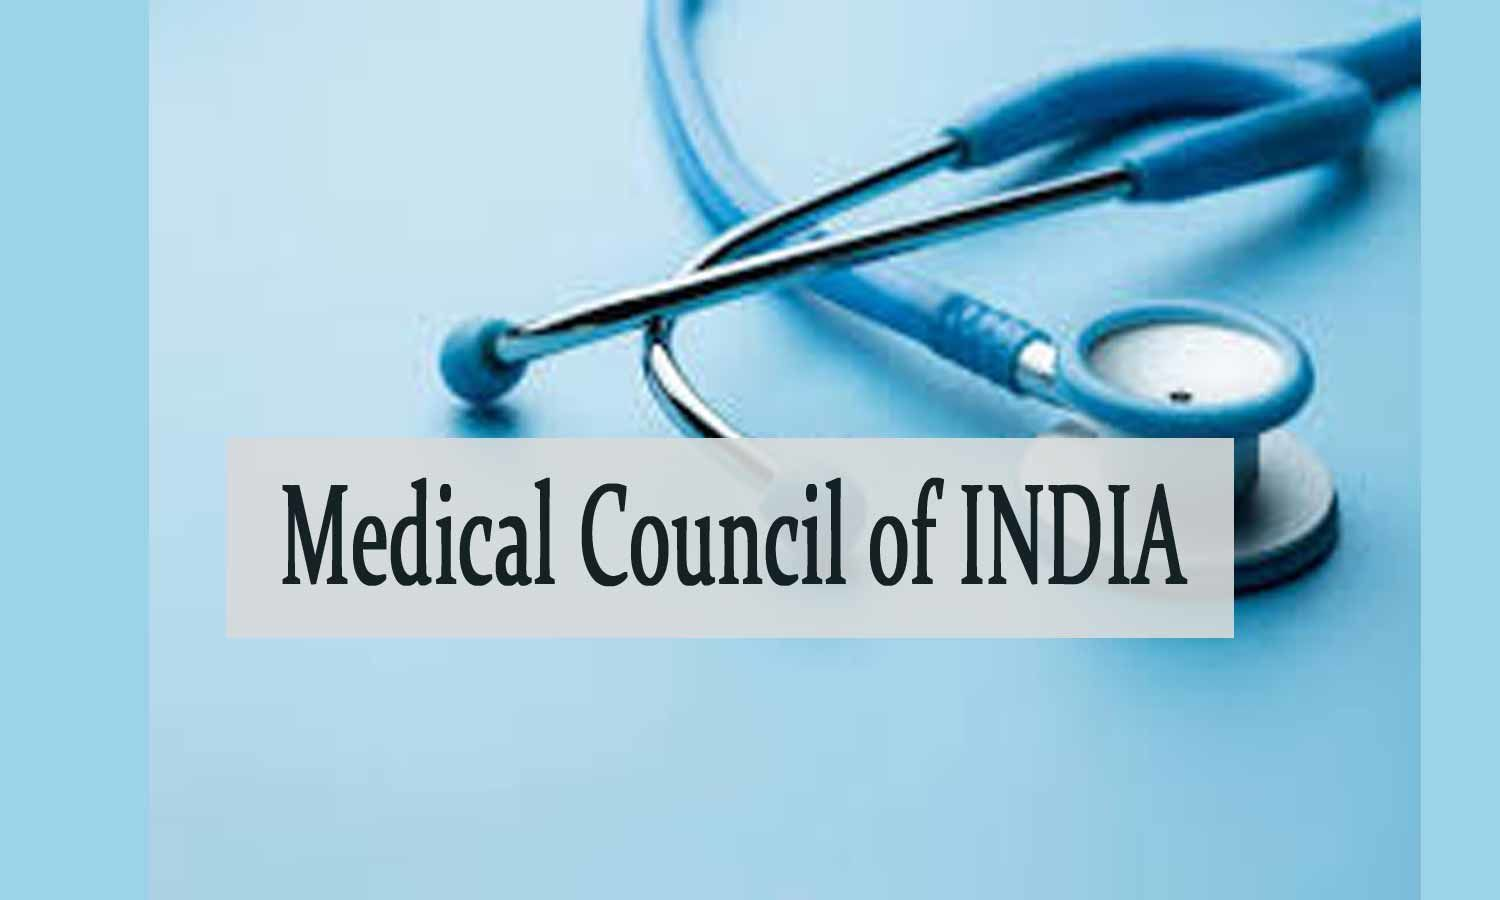 Conduction of MD, MS Exams: MCI BOG issues advisory to Medical colleges, gives deadline